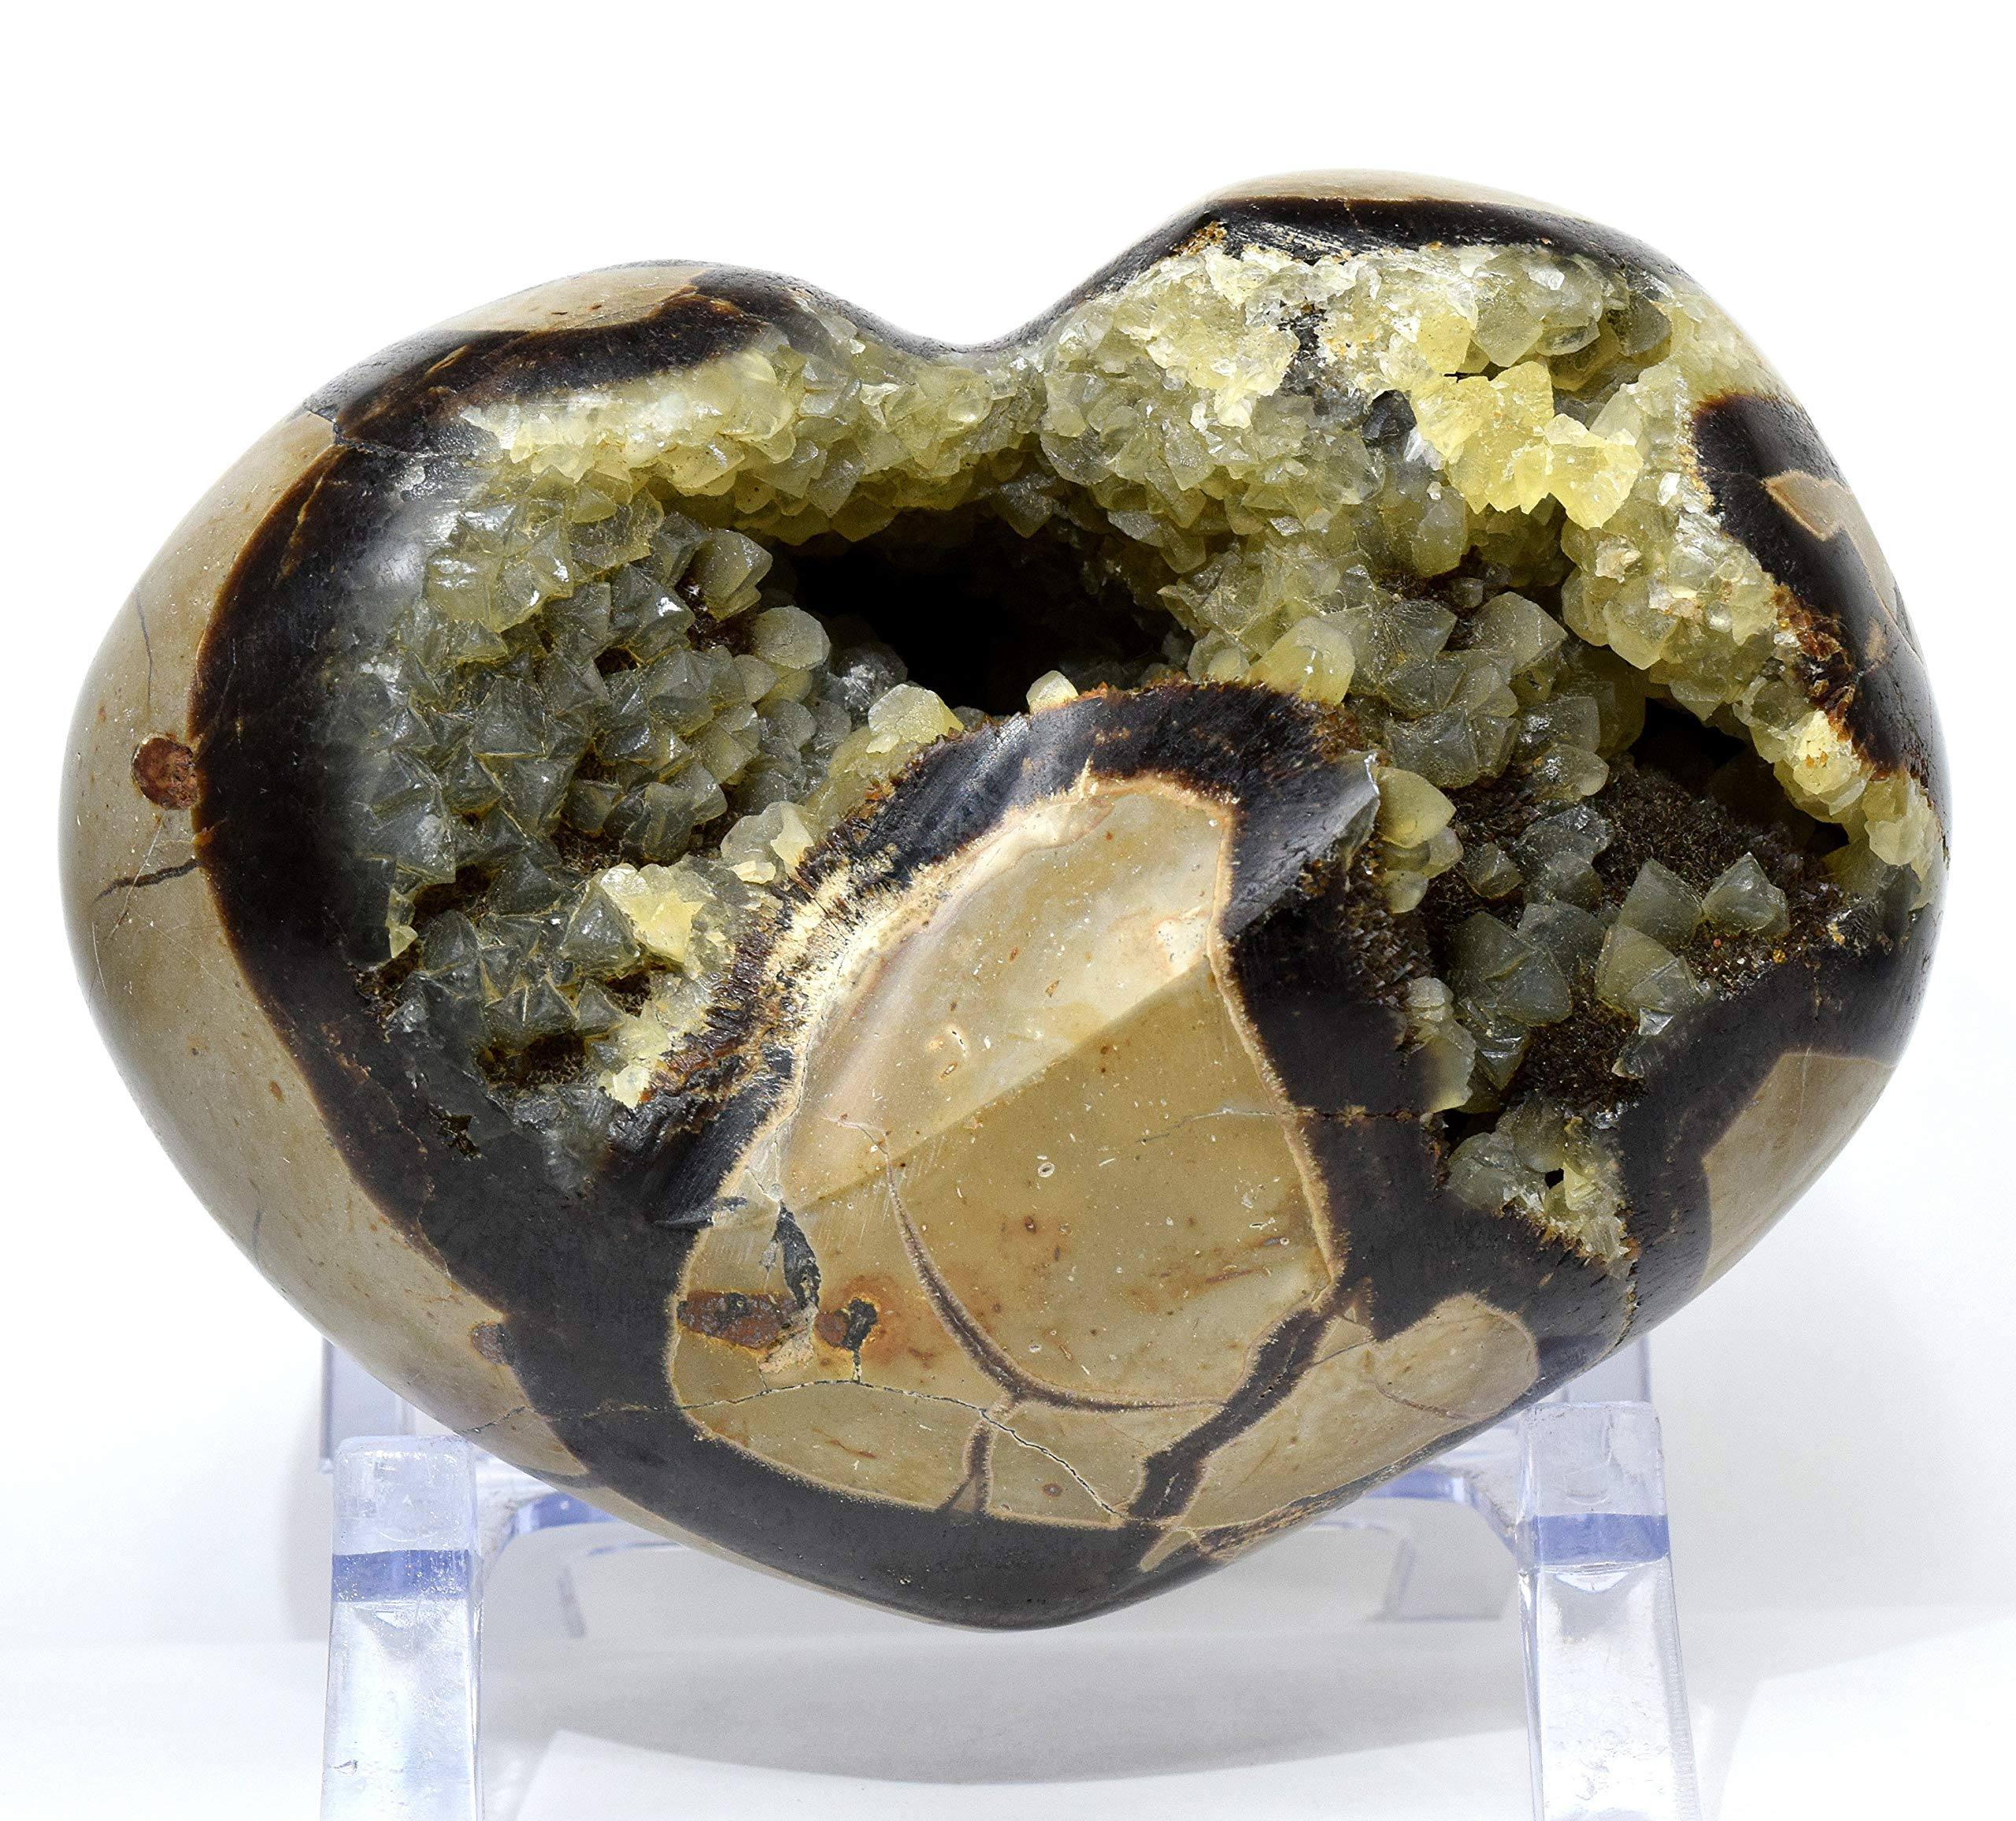 Large 2.8lb 5.25'' Septarian Dragon Stone Puffy Heart Natural Glittering Yellow Calcite Brown Aragonite Crystal Druzy Mineral Polished Love Stone Heart - Madagascar + Acrylic Display Stand